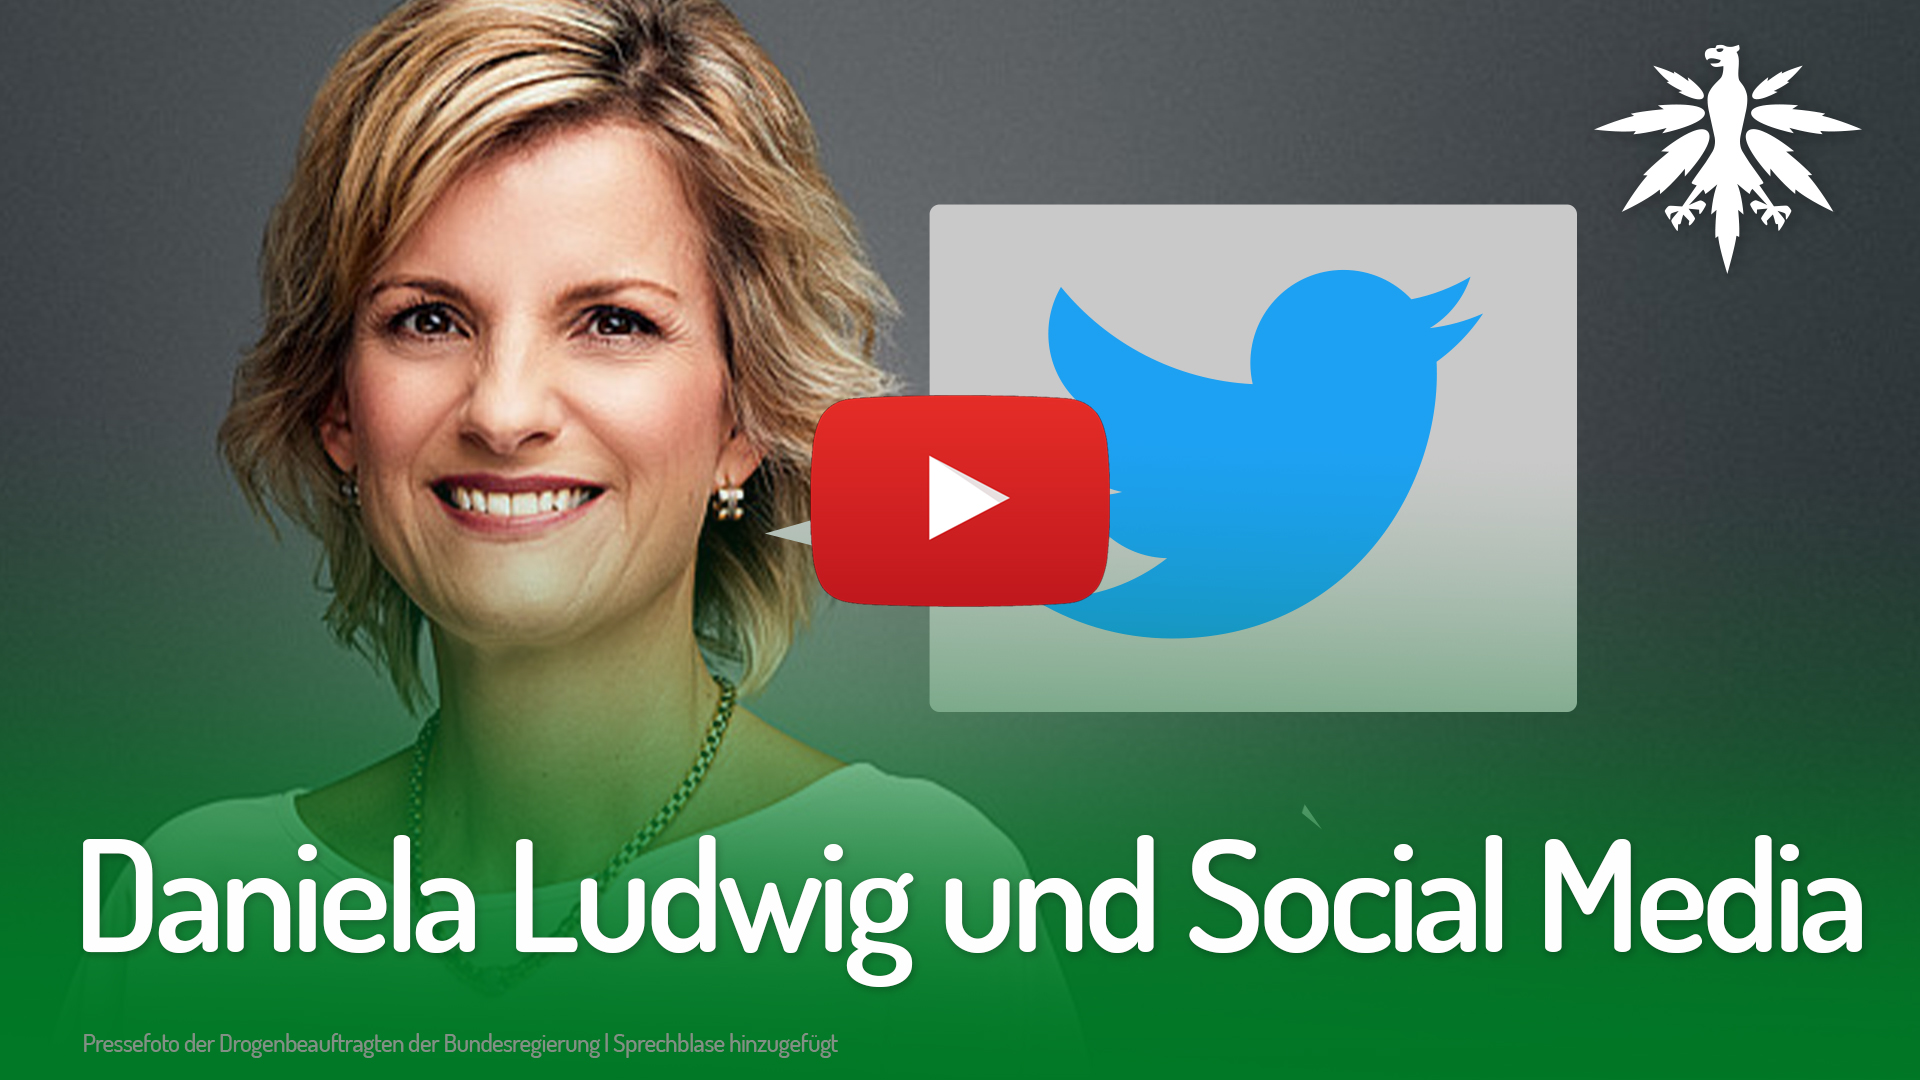 Daniela Ludwig und Social Media | DHV-Video-News #238